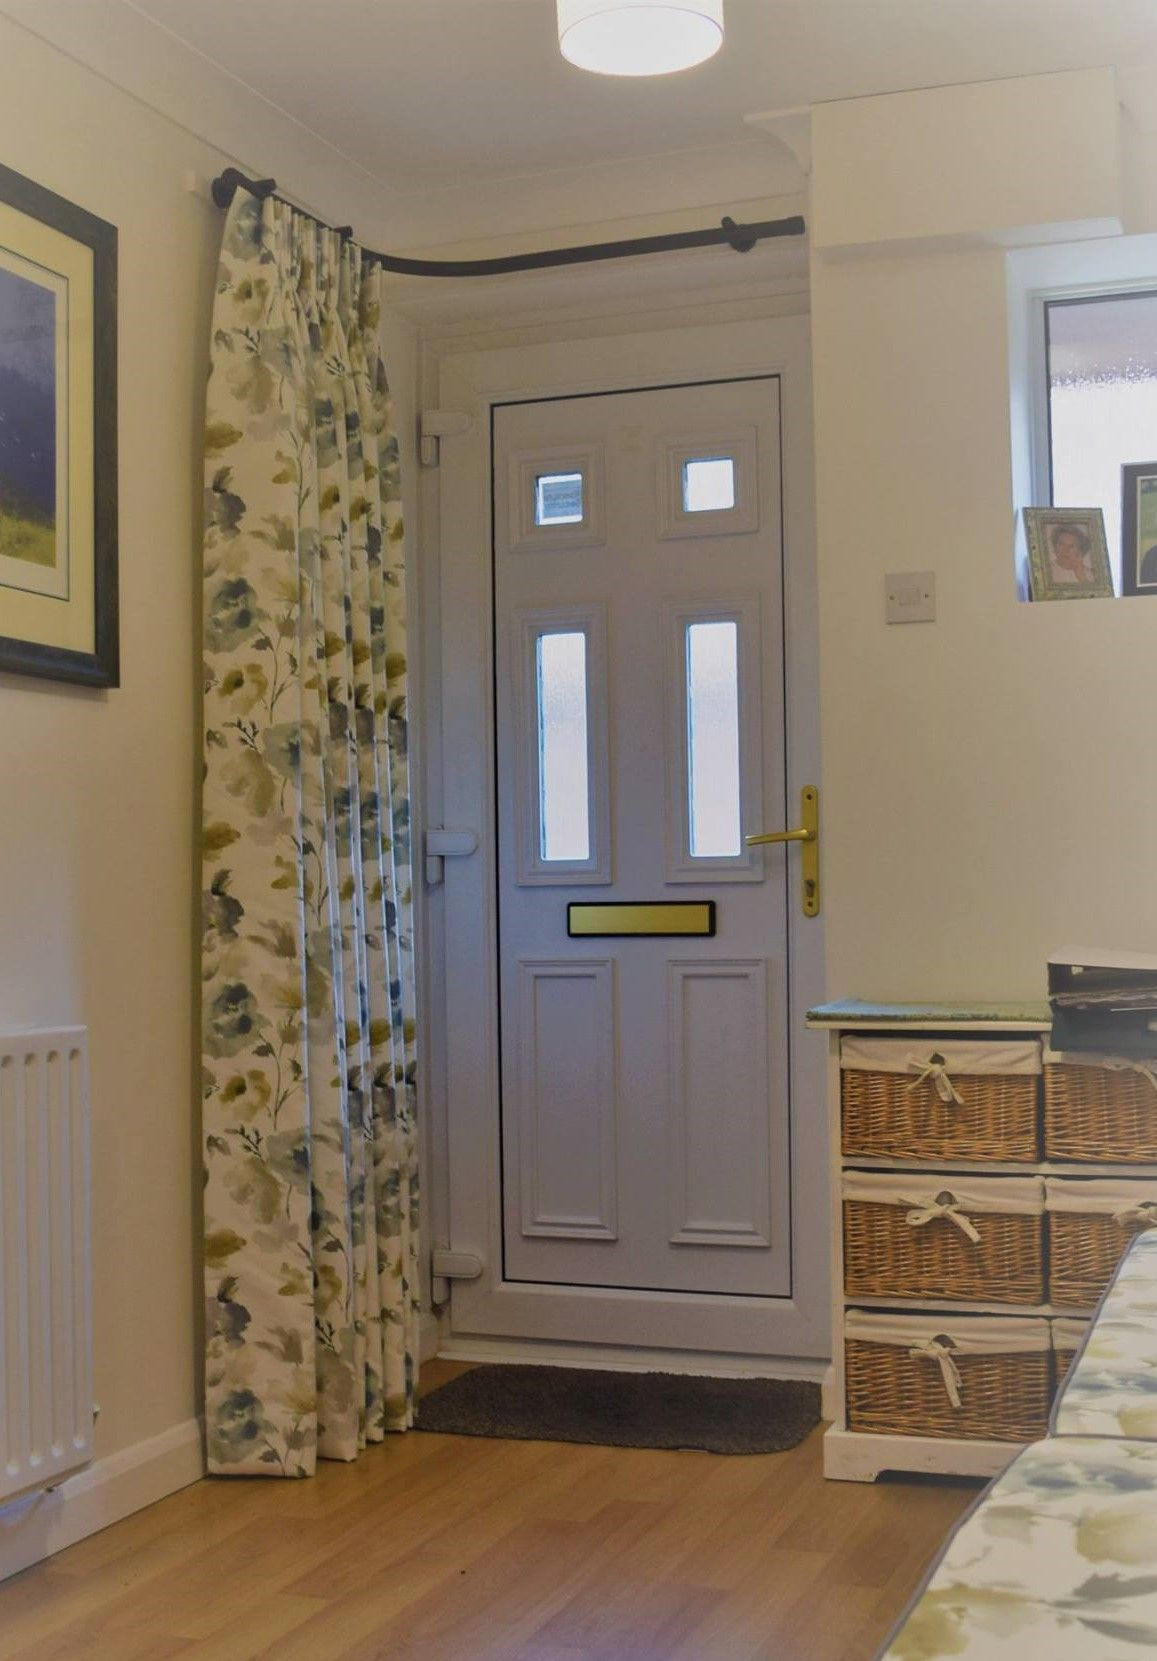 Door Curtain On Custom Bent Crs Track By Malthouse And Summer